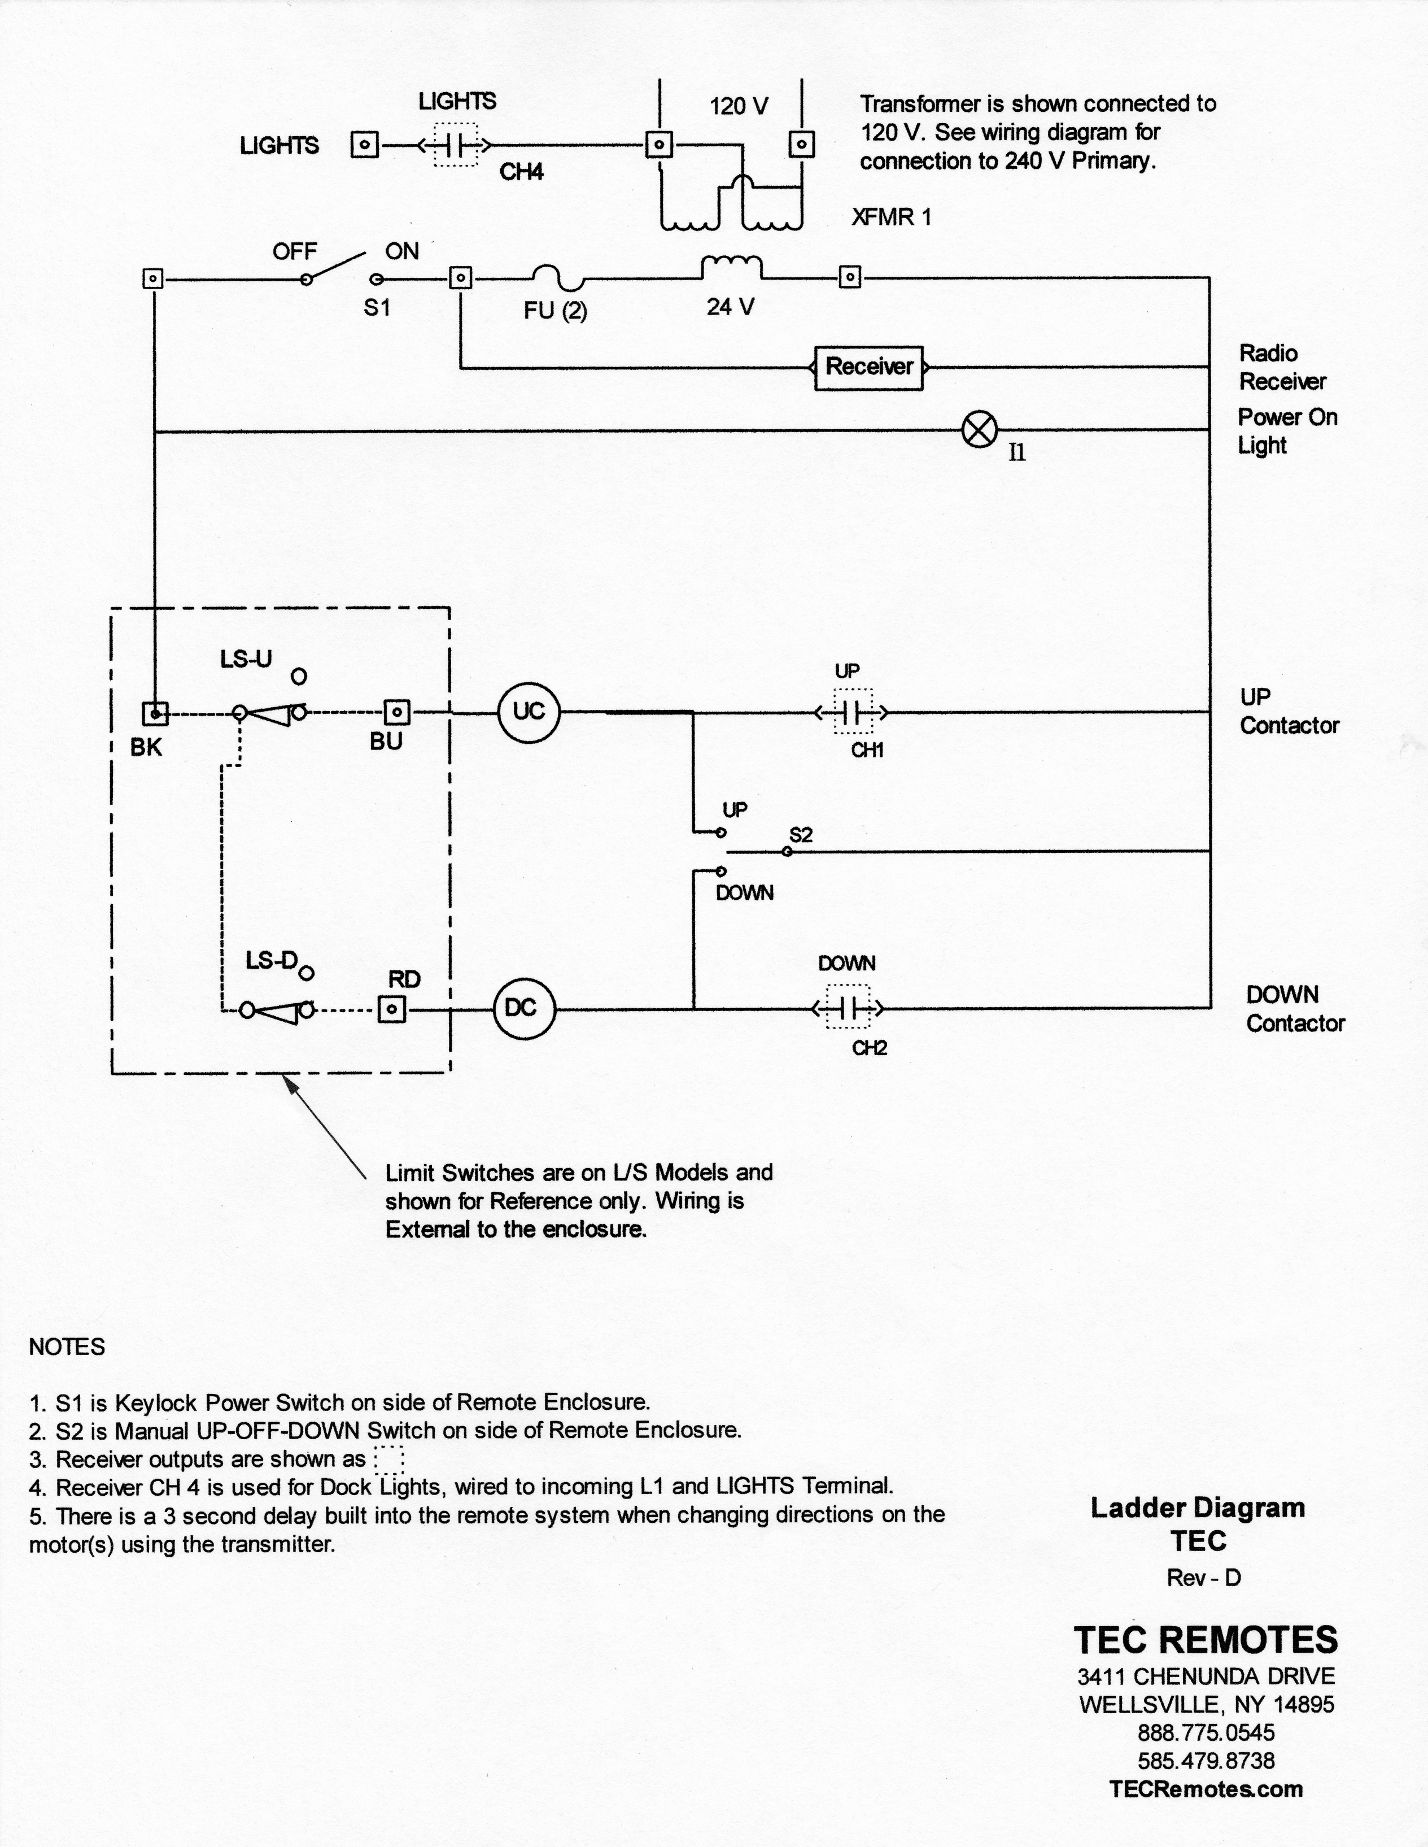 wiring installation rh tecremotes com Furnace Limit Switch Wiring Diagram Limit Switch Circuit Diagram